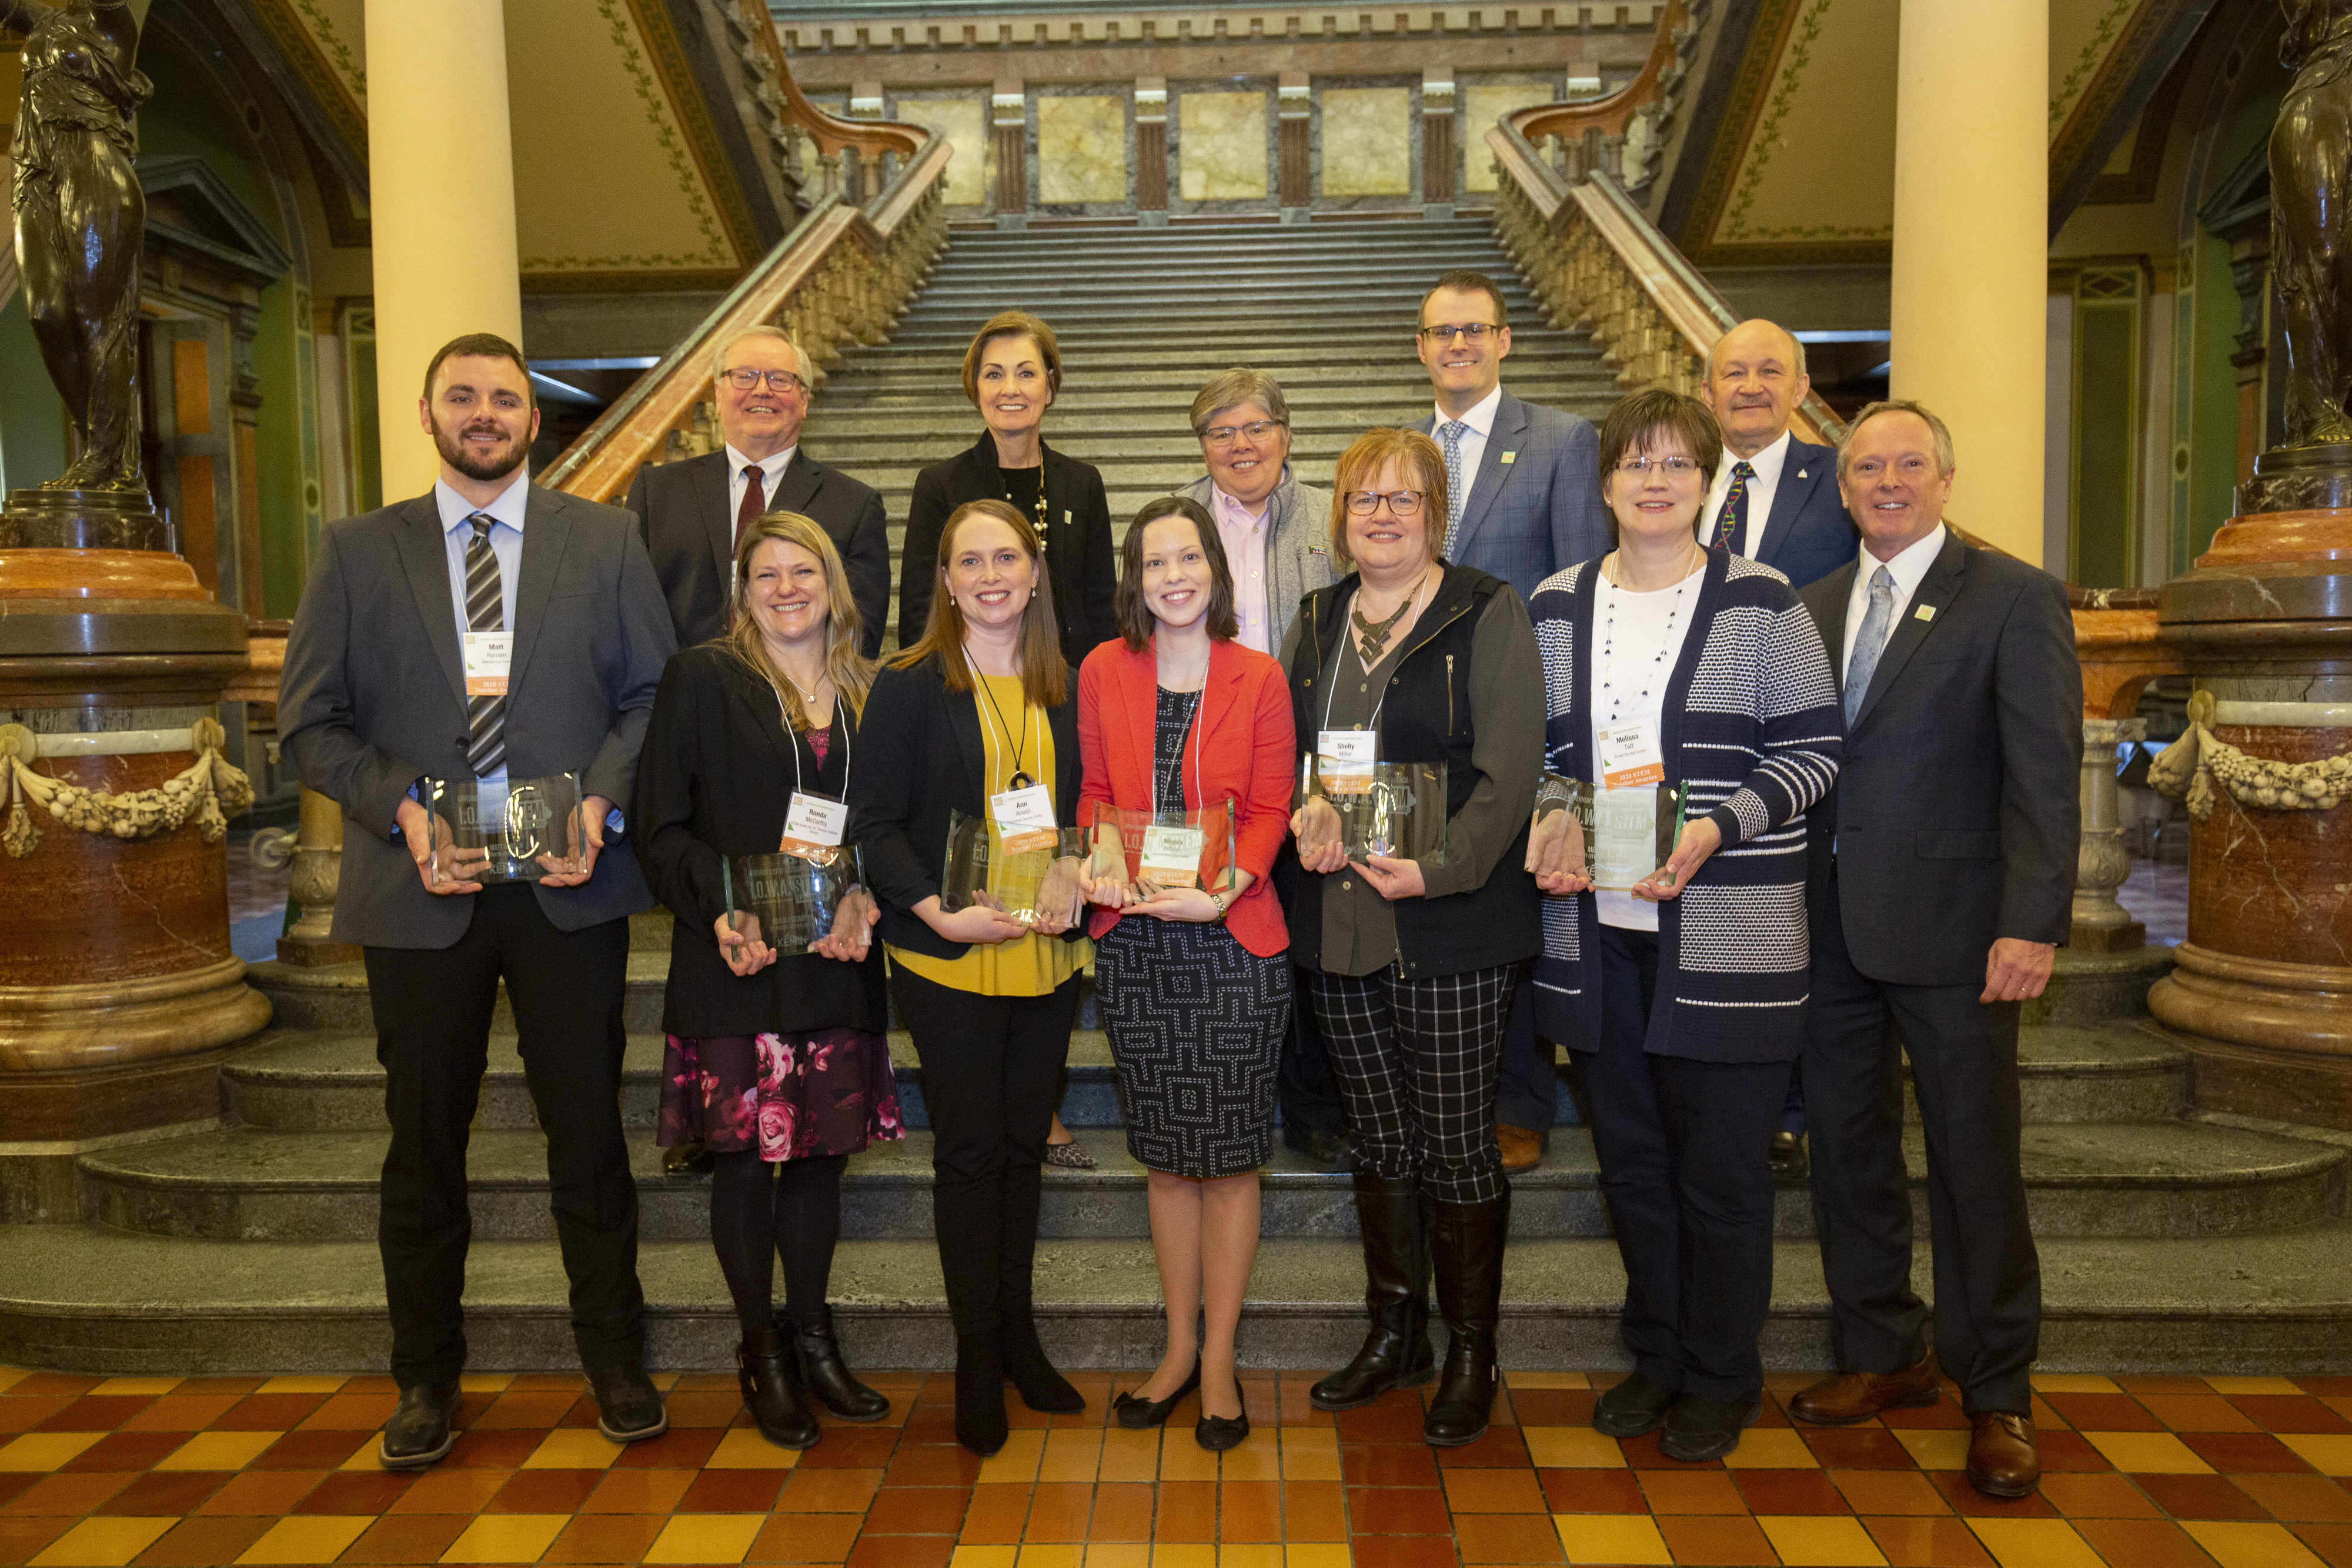 The 2019 Iowa STEM Teacher Award recipients were honored at STEM Day at the Capitol last February.